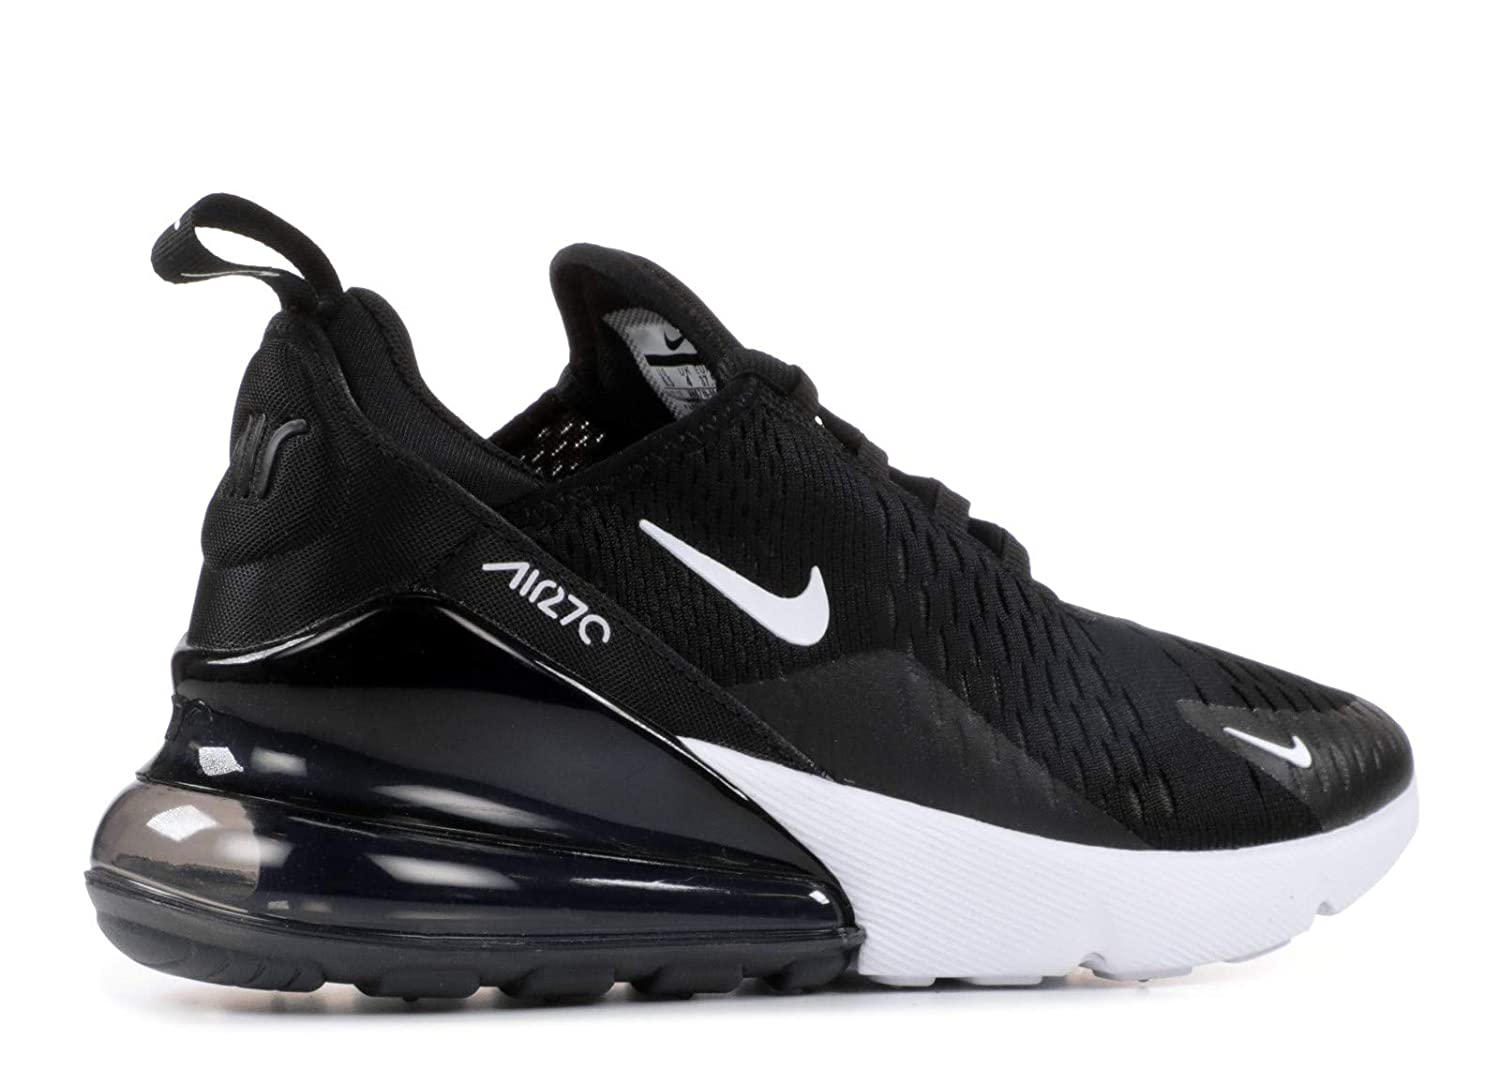 new concept d637c 7ade0 Amazon.com   Nike Women s WMNS Air Max 270, Black Anthracite-White, 9.5 M  US   Fashion Sneakers